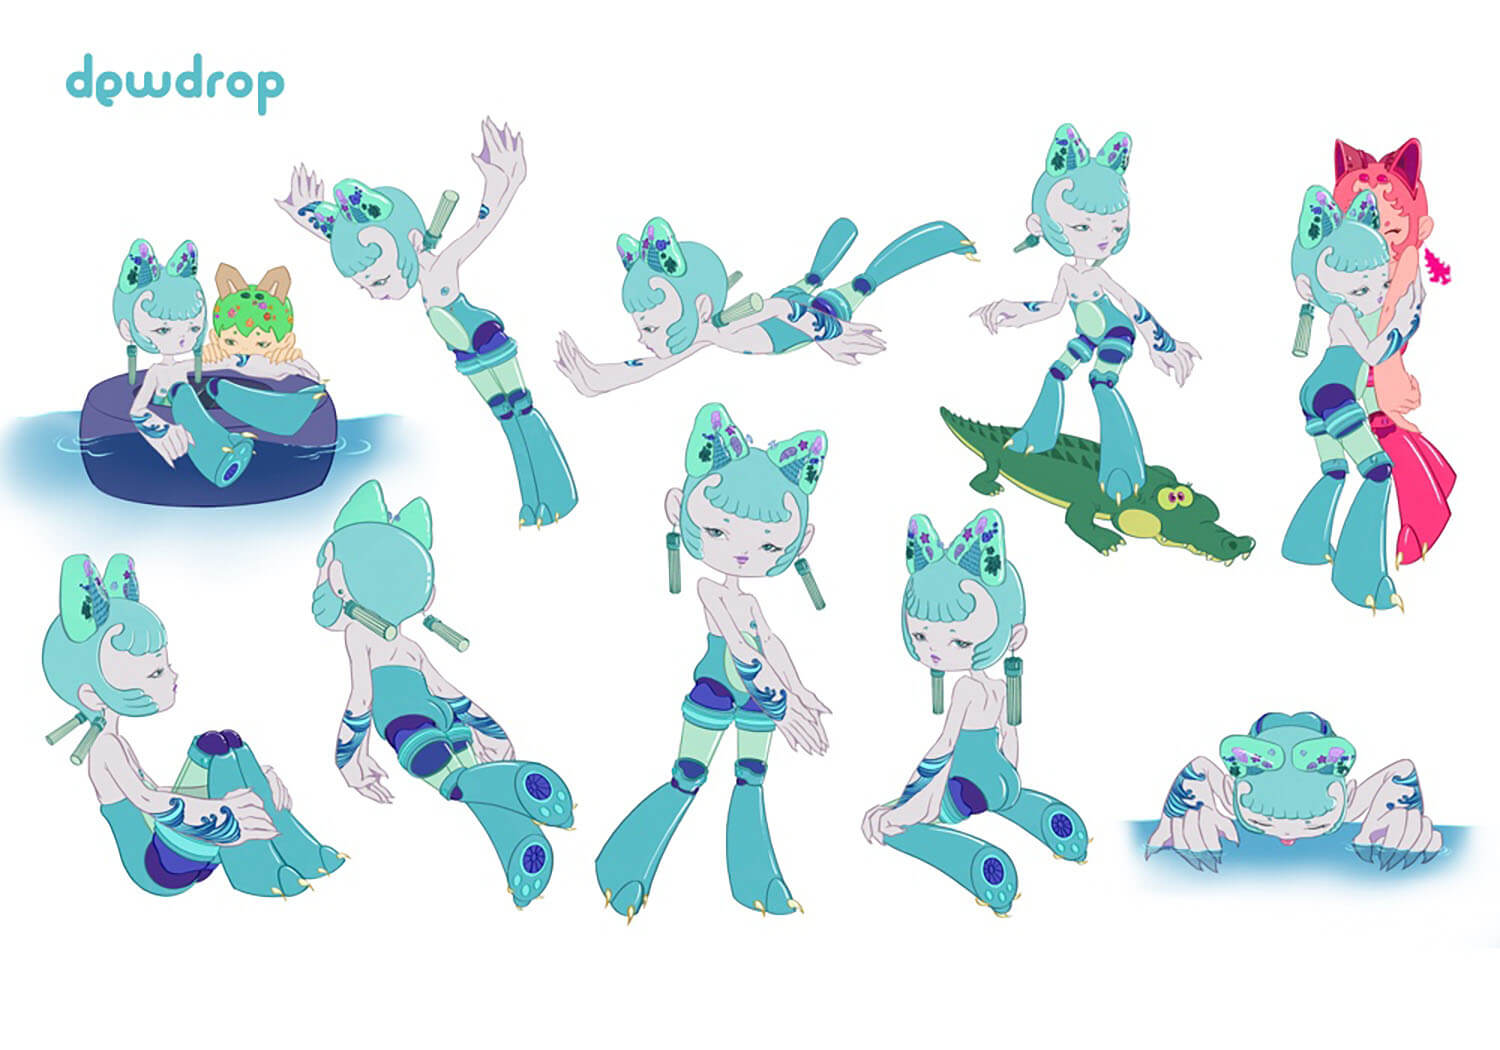 Dewdrop Character Poses